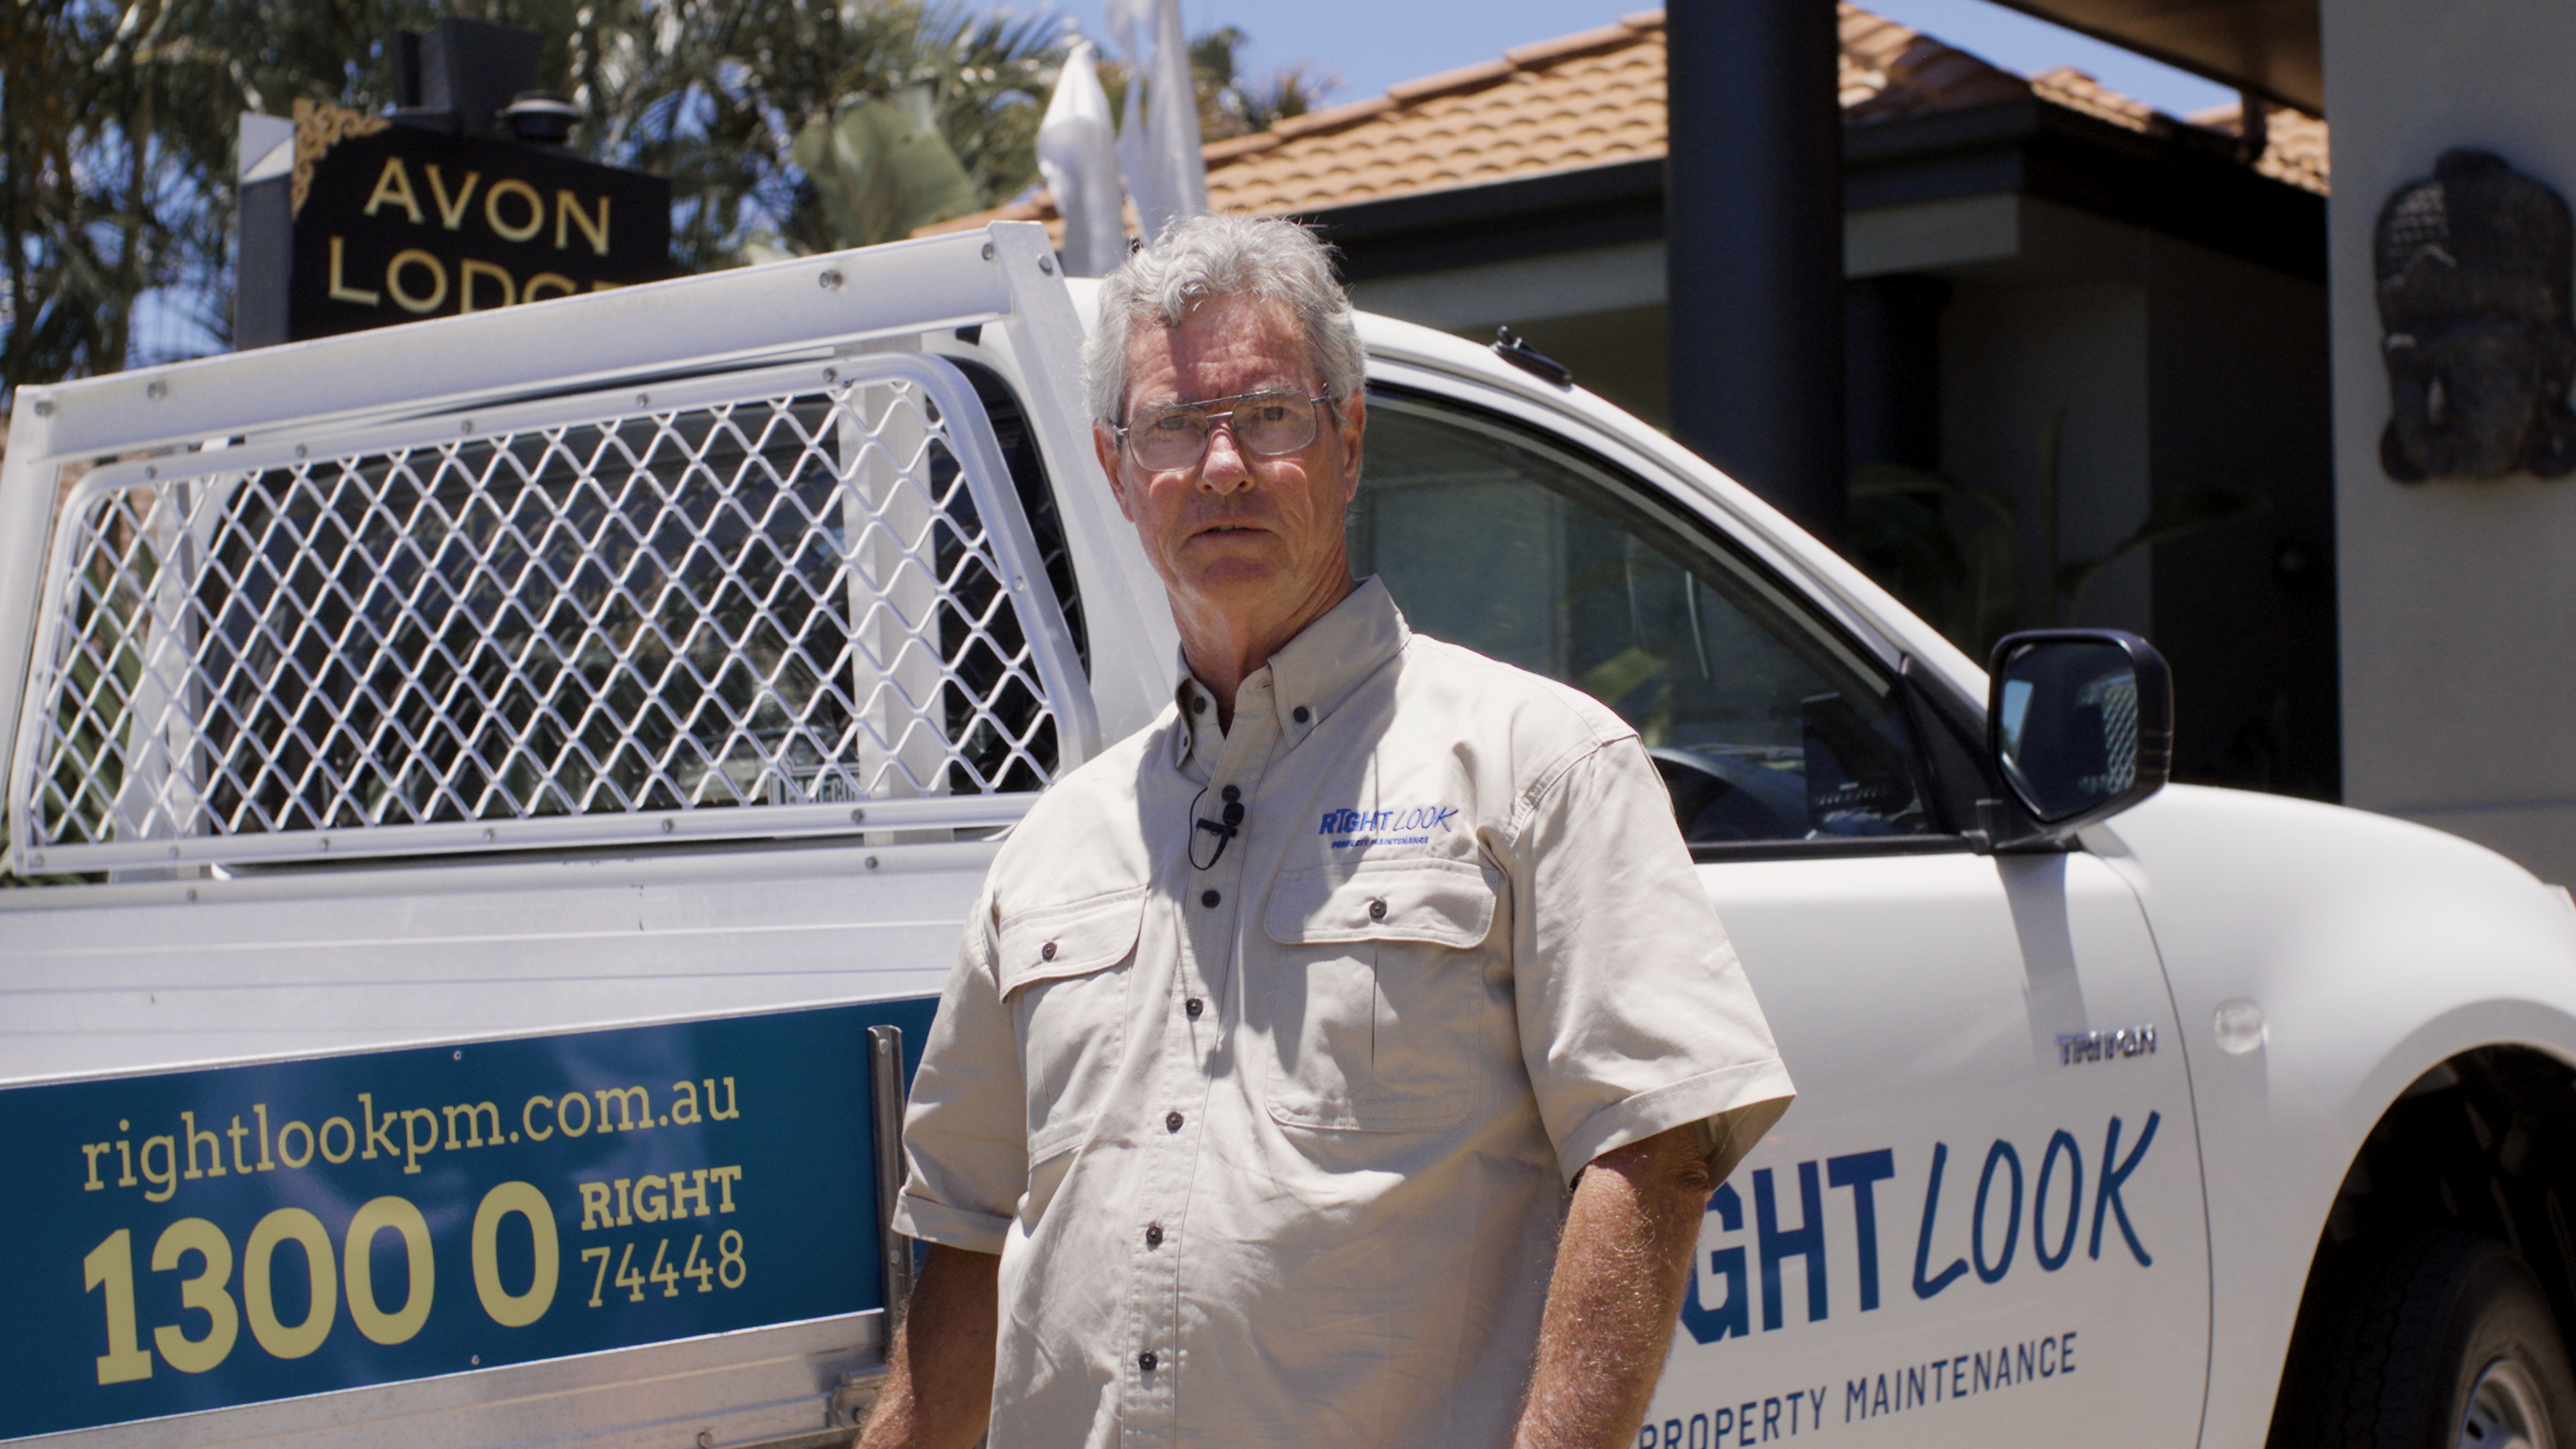 Right Look Property Maintenance - Experience Counts